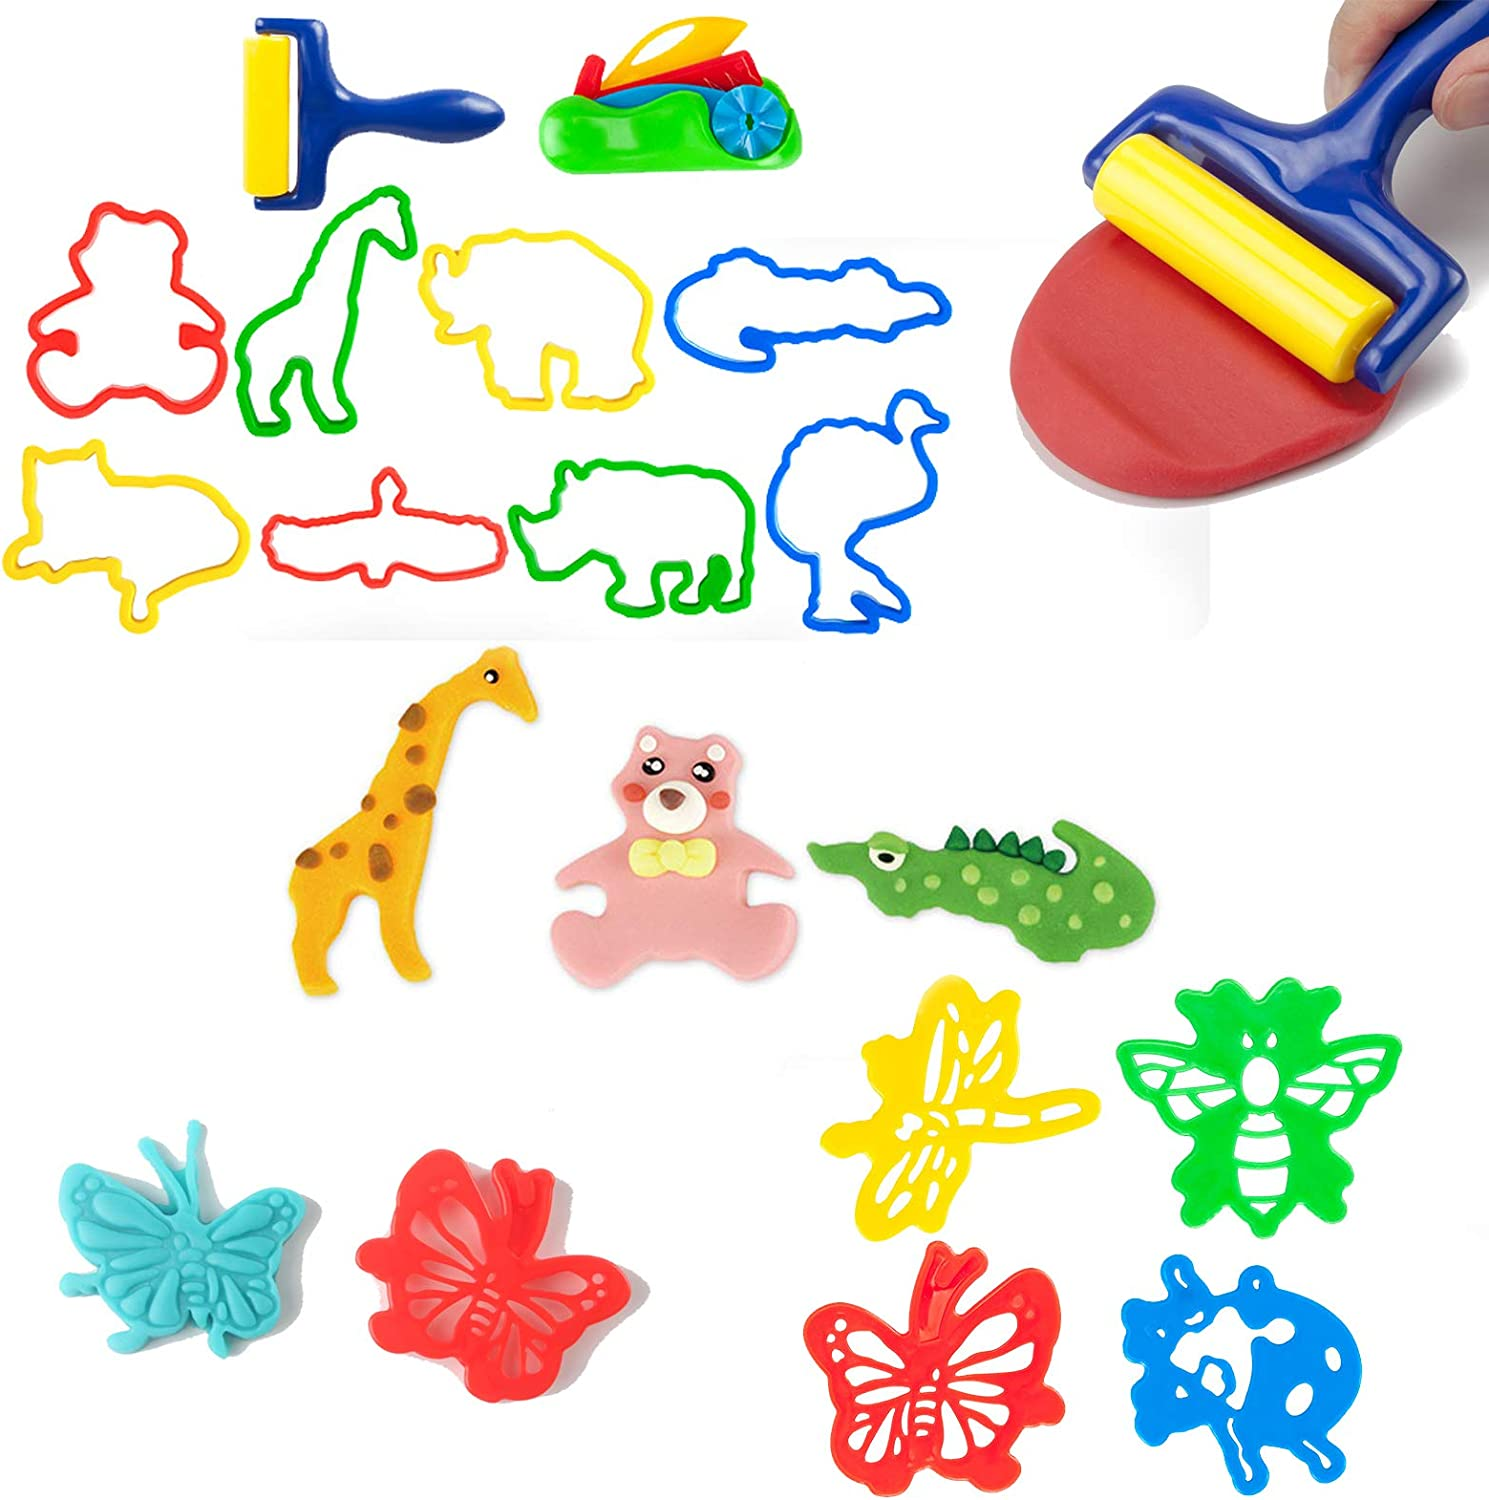 77 PCS Clay Dough Tools Kit for Kid Various Plastic Animal Molds and Numbers Tool Playset Includes Molds /& Play Accessories for Creative Dough Cutting